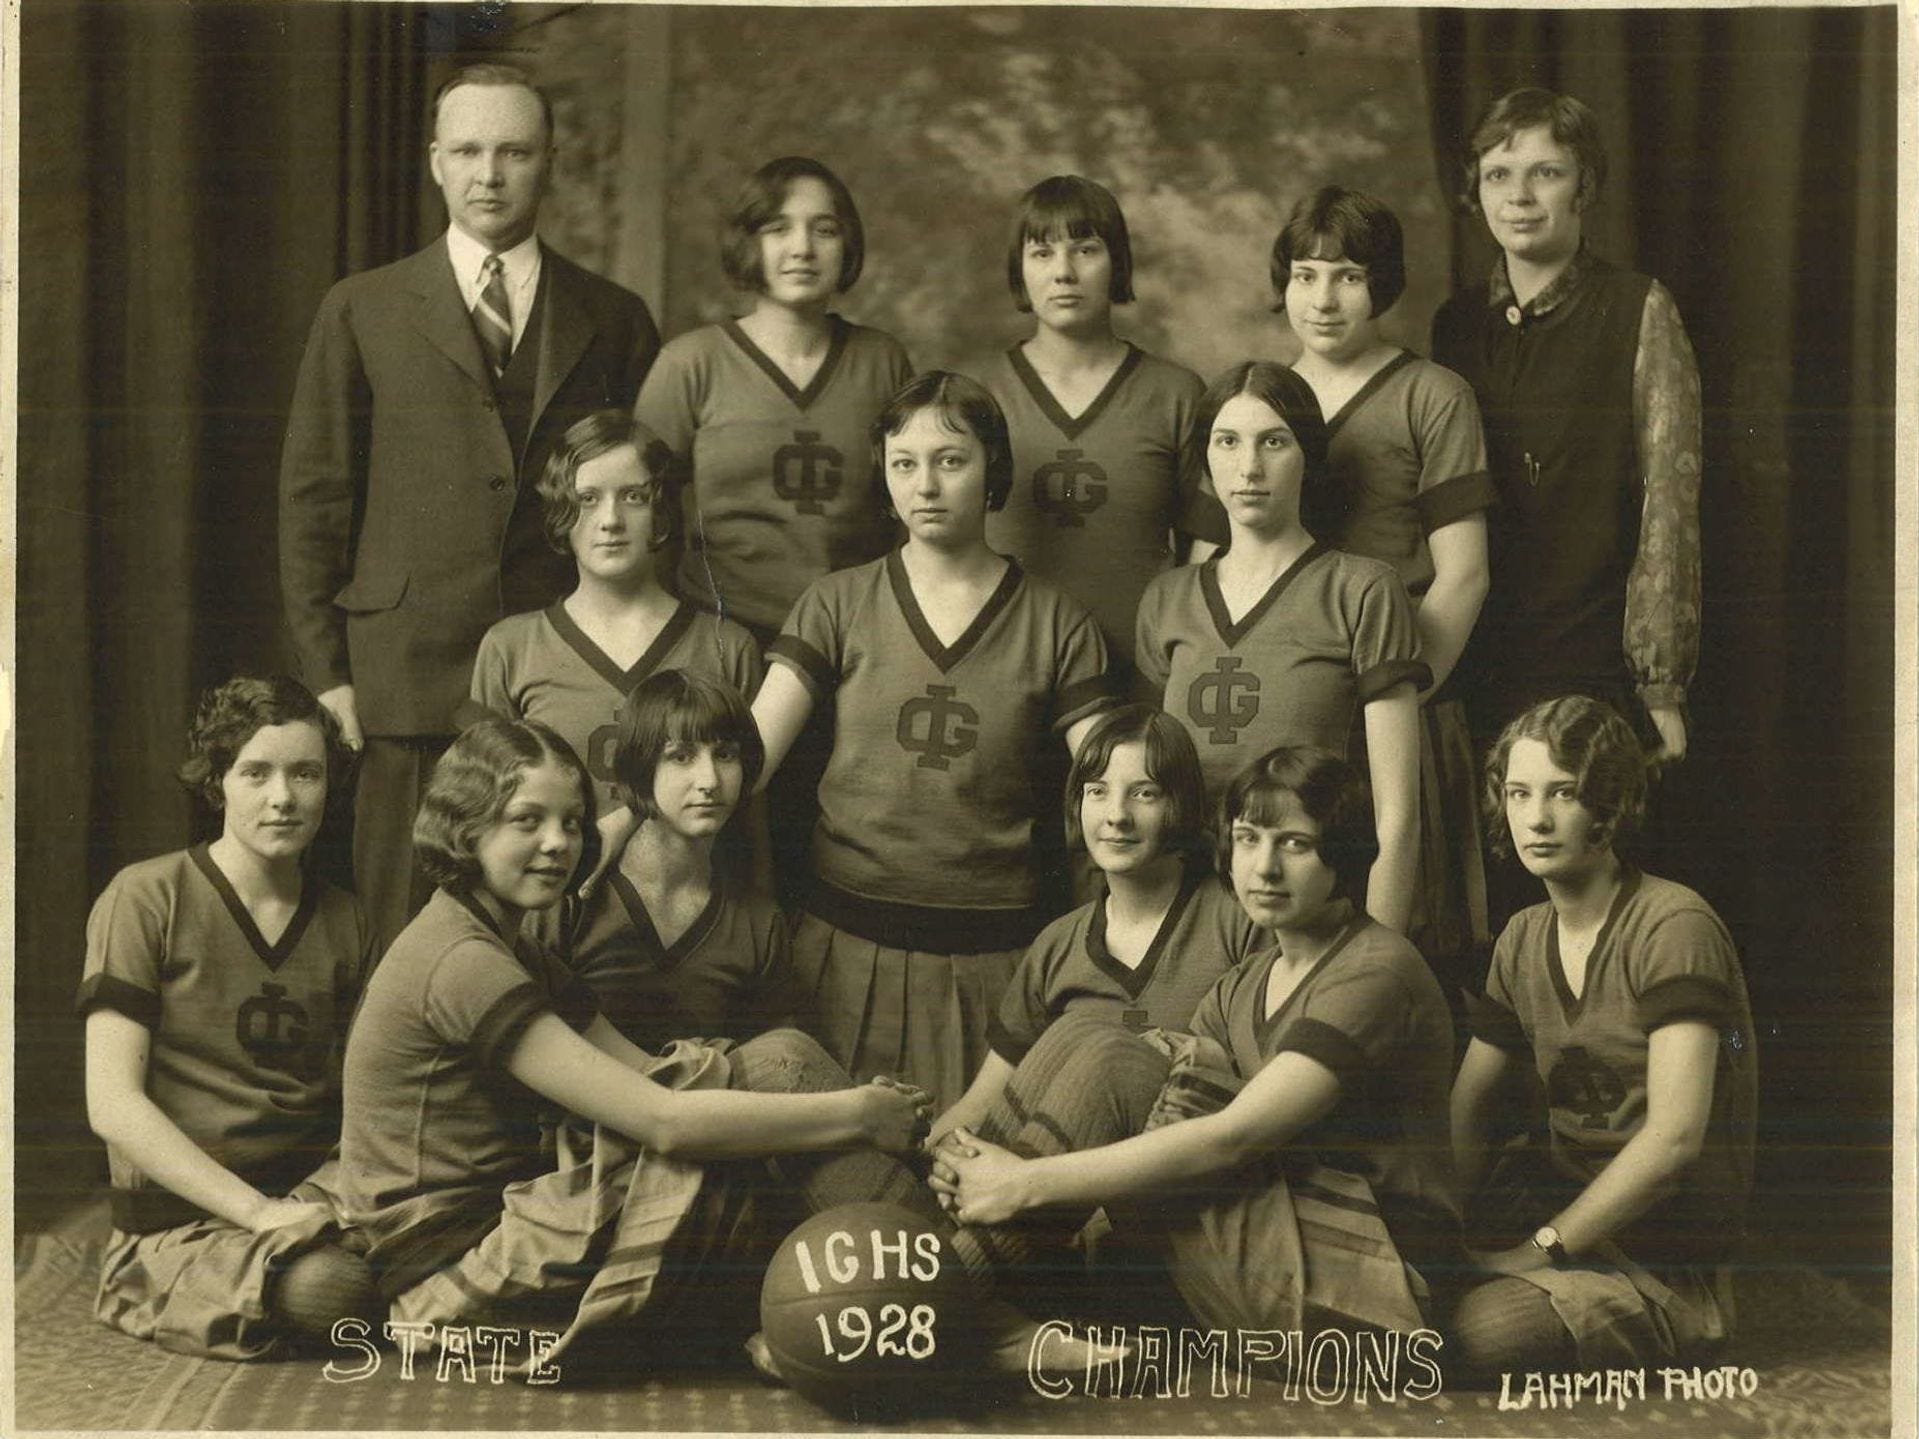 1928: The Ida Grove basketball team won the state girls' basketball tournament in 1928. From left to right, front row: Mae Aukerman, Sylvia Rohwer, Carolyn Miller, Virginia Aiken, Dorothy Anderson and Mary Koons; second row: May Iverson, Pauline Lahr, Sarah Alien White; back row: C.W. Sankey, coach; Marjory Anderson, Olive Little, Mary Page and Esther Saupe, chaperone. Special to the Register